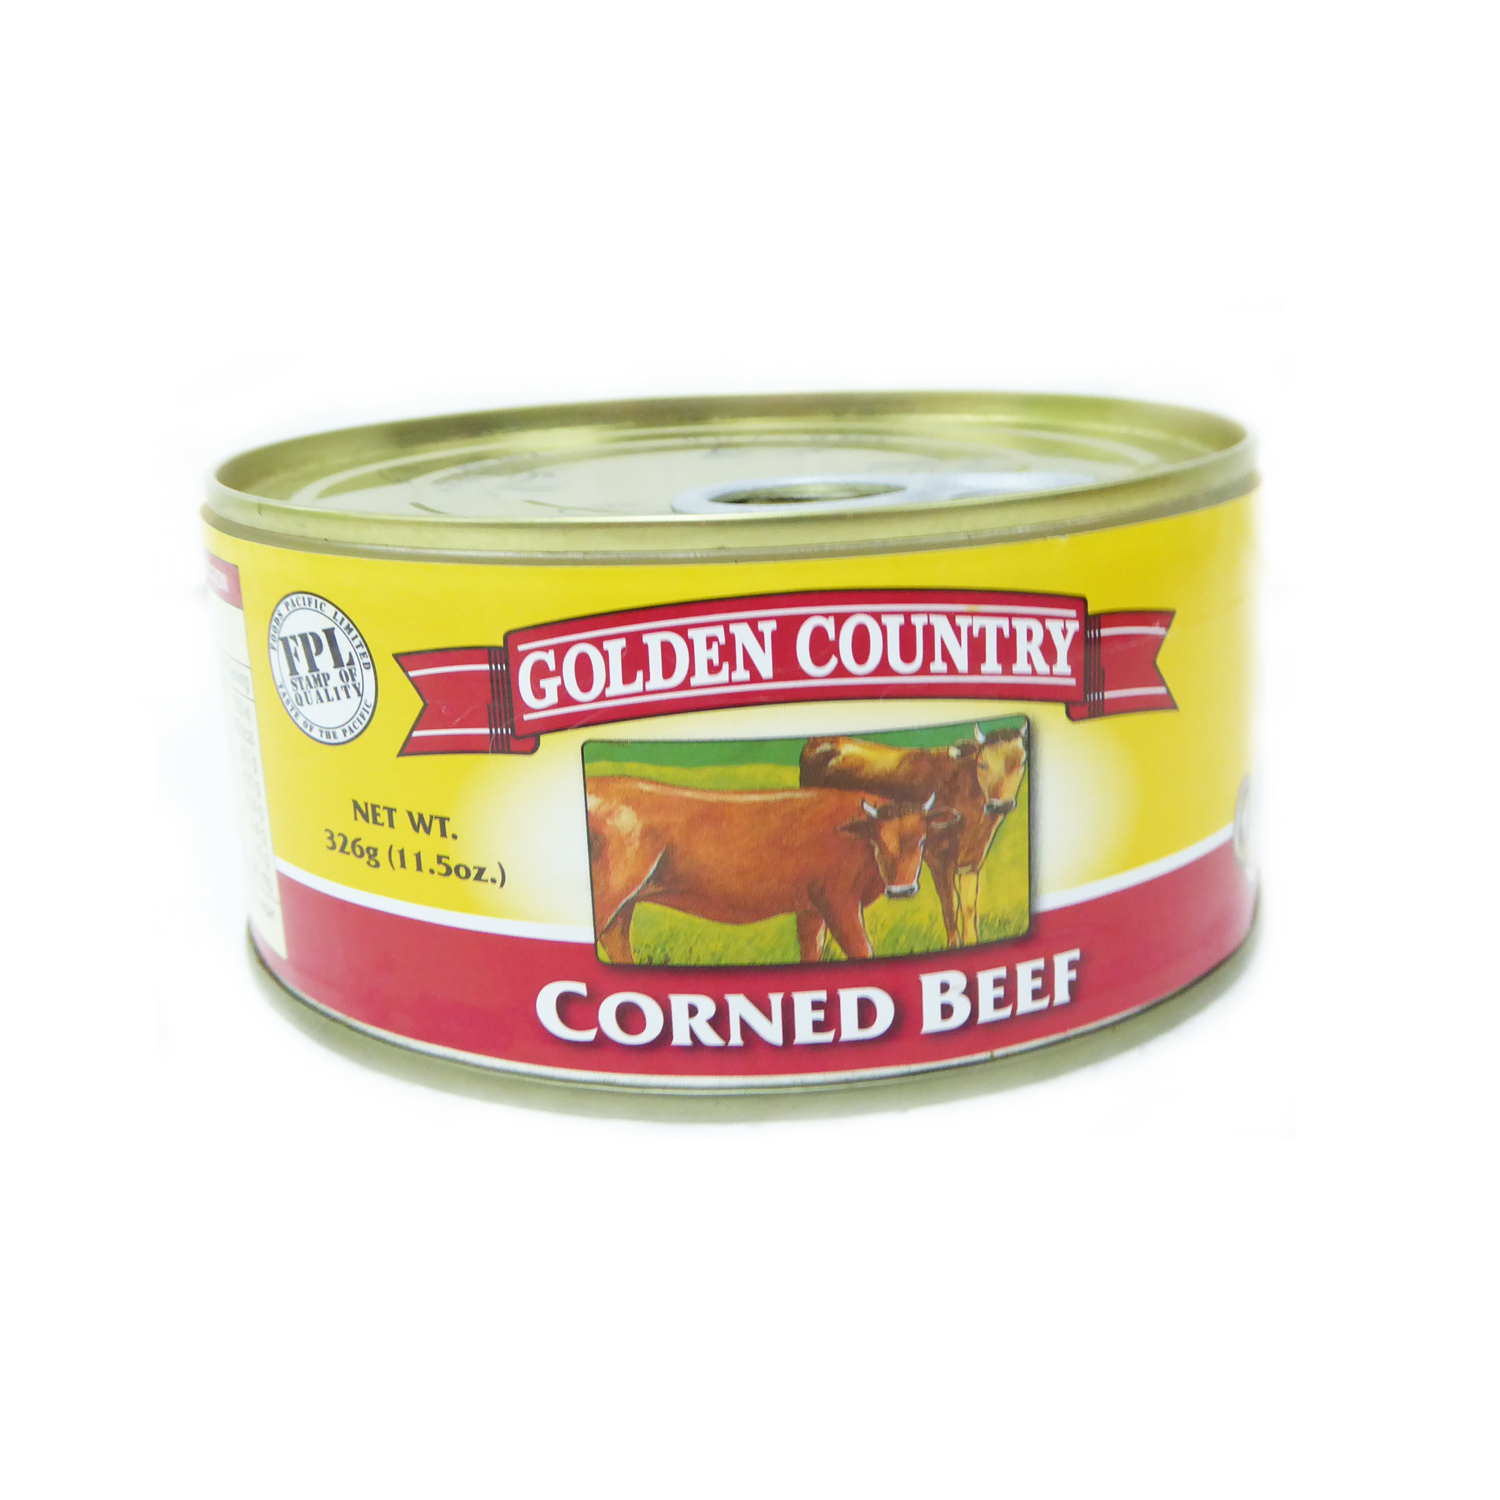 Golden Country Corned Beef 326g